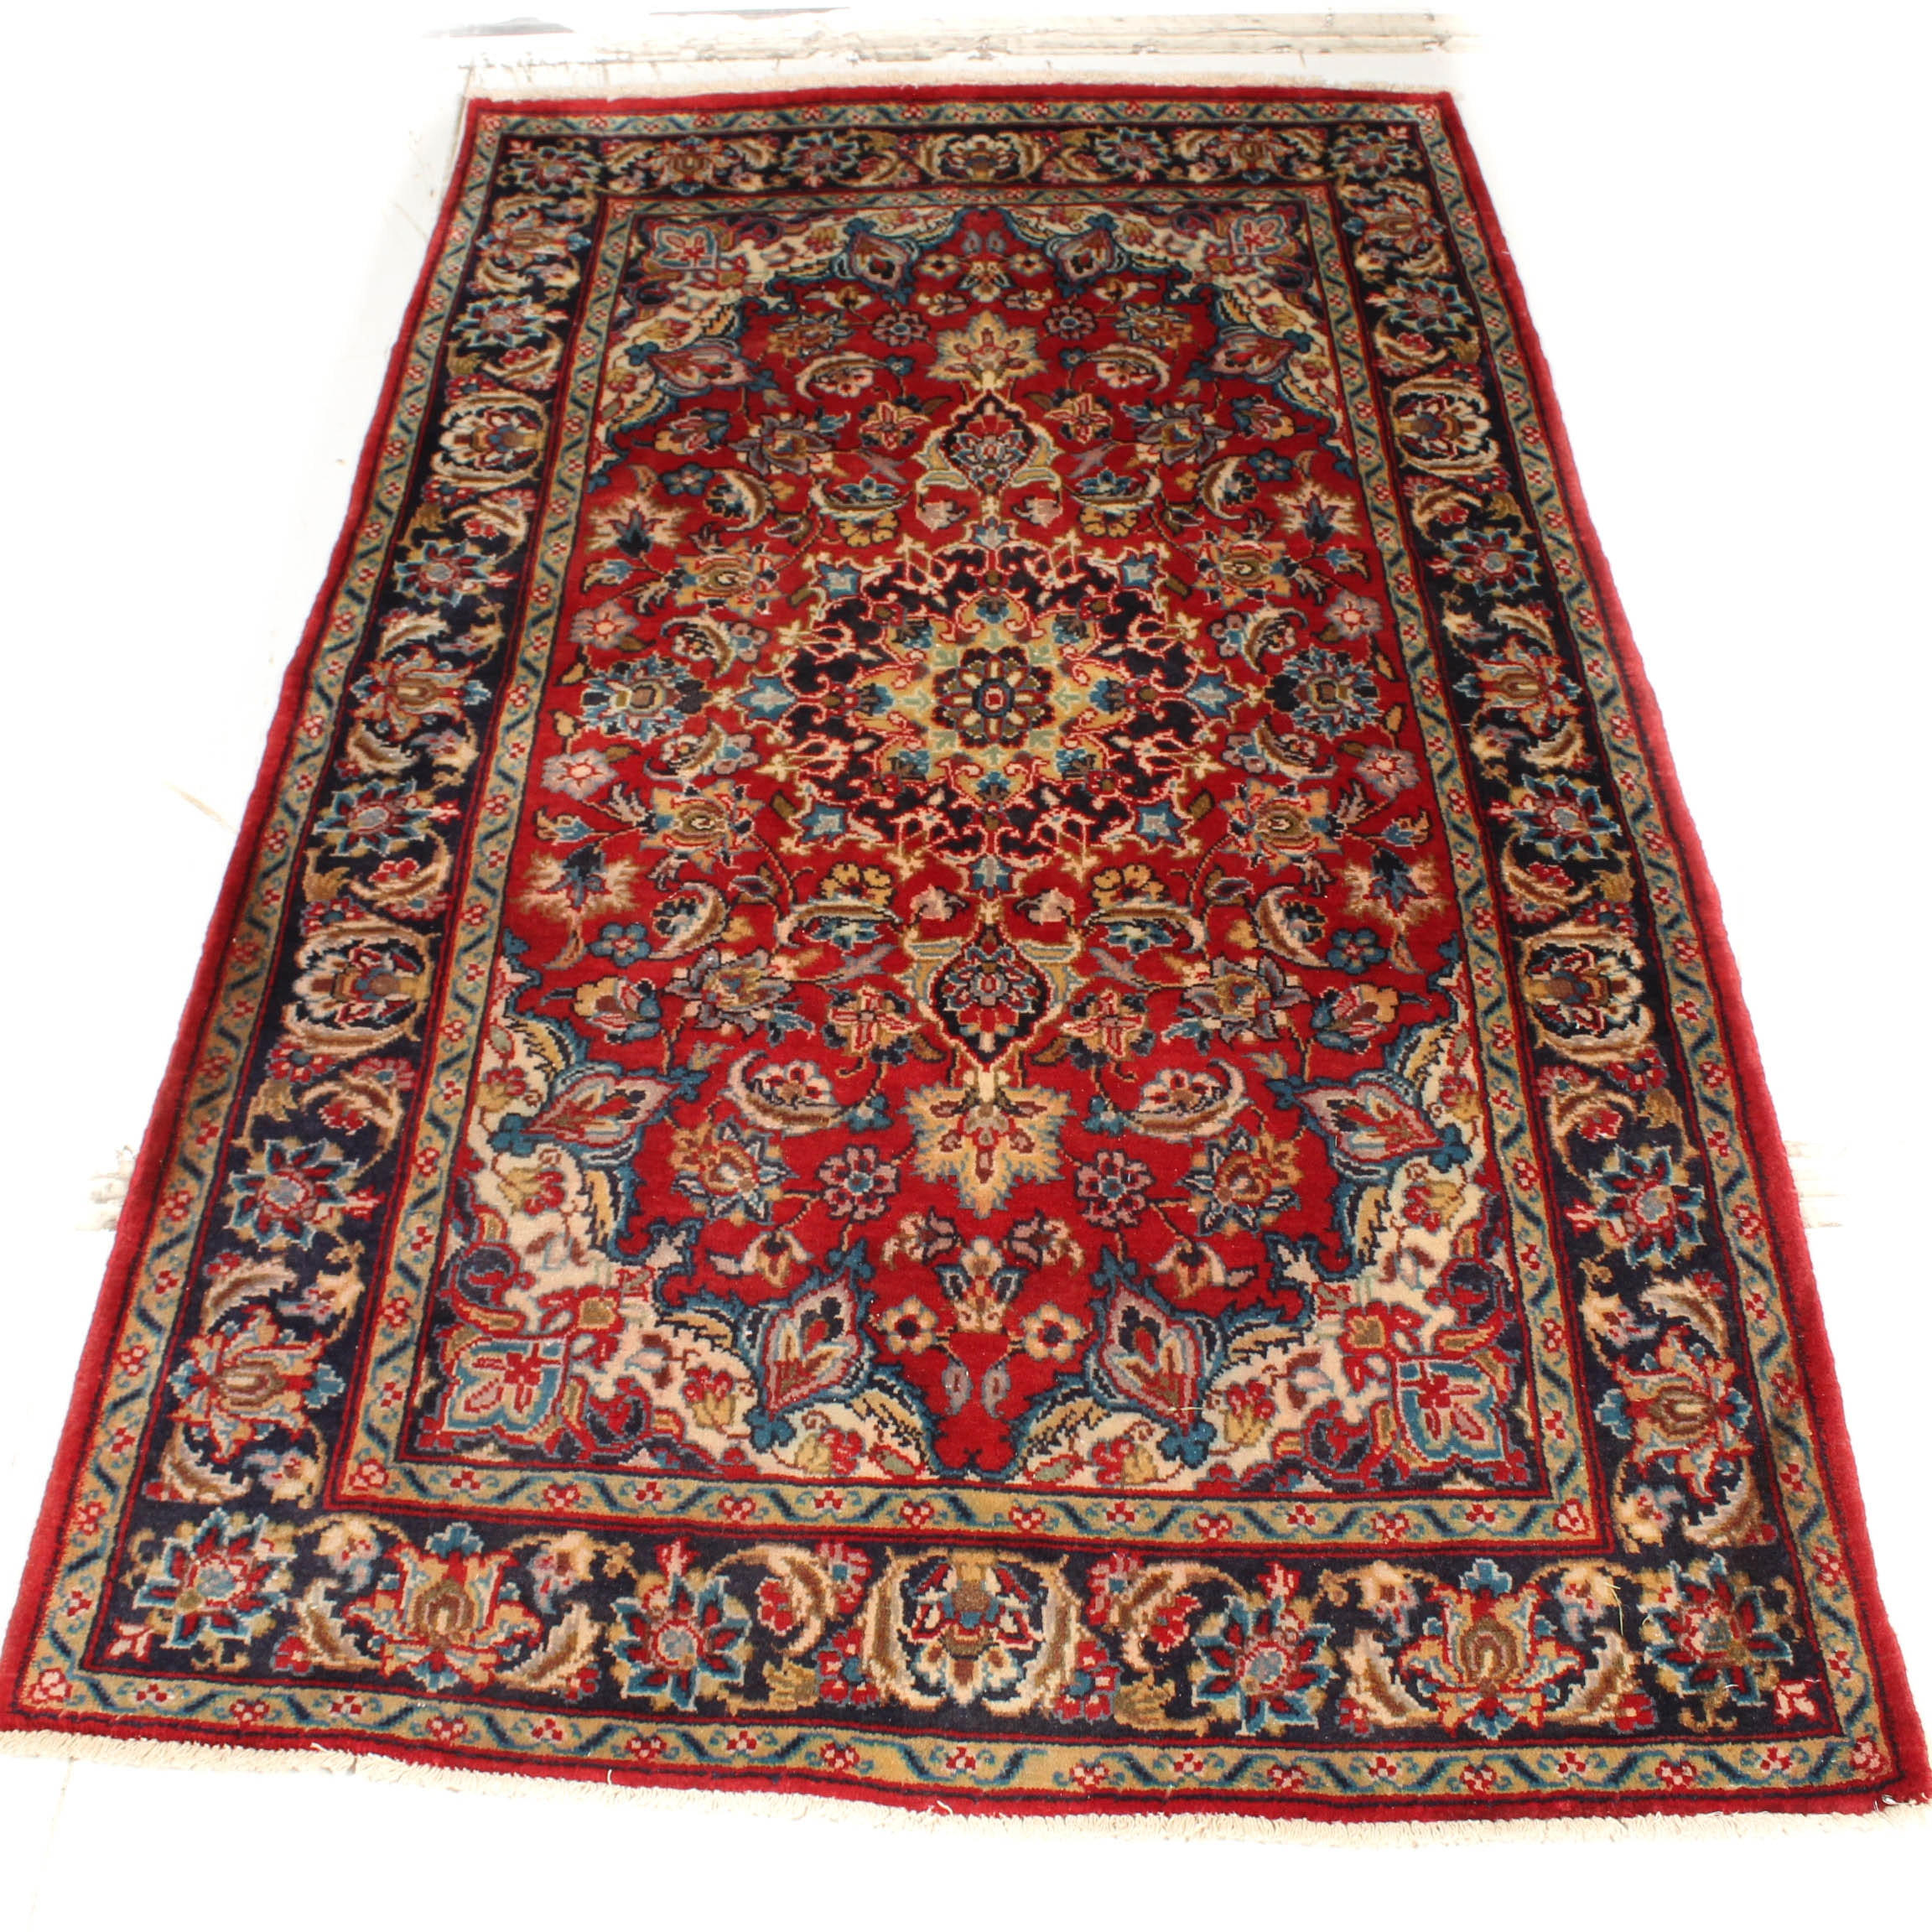 Vintage Hand-Knotted Persian Isfahan Area Rug